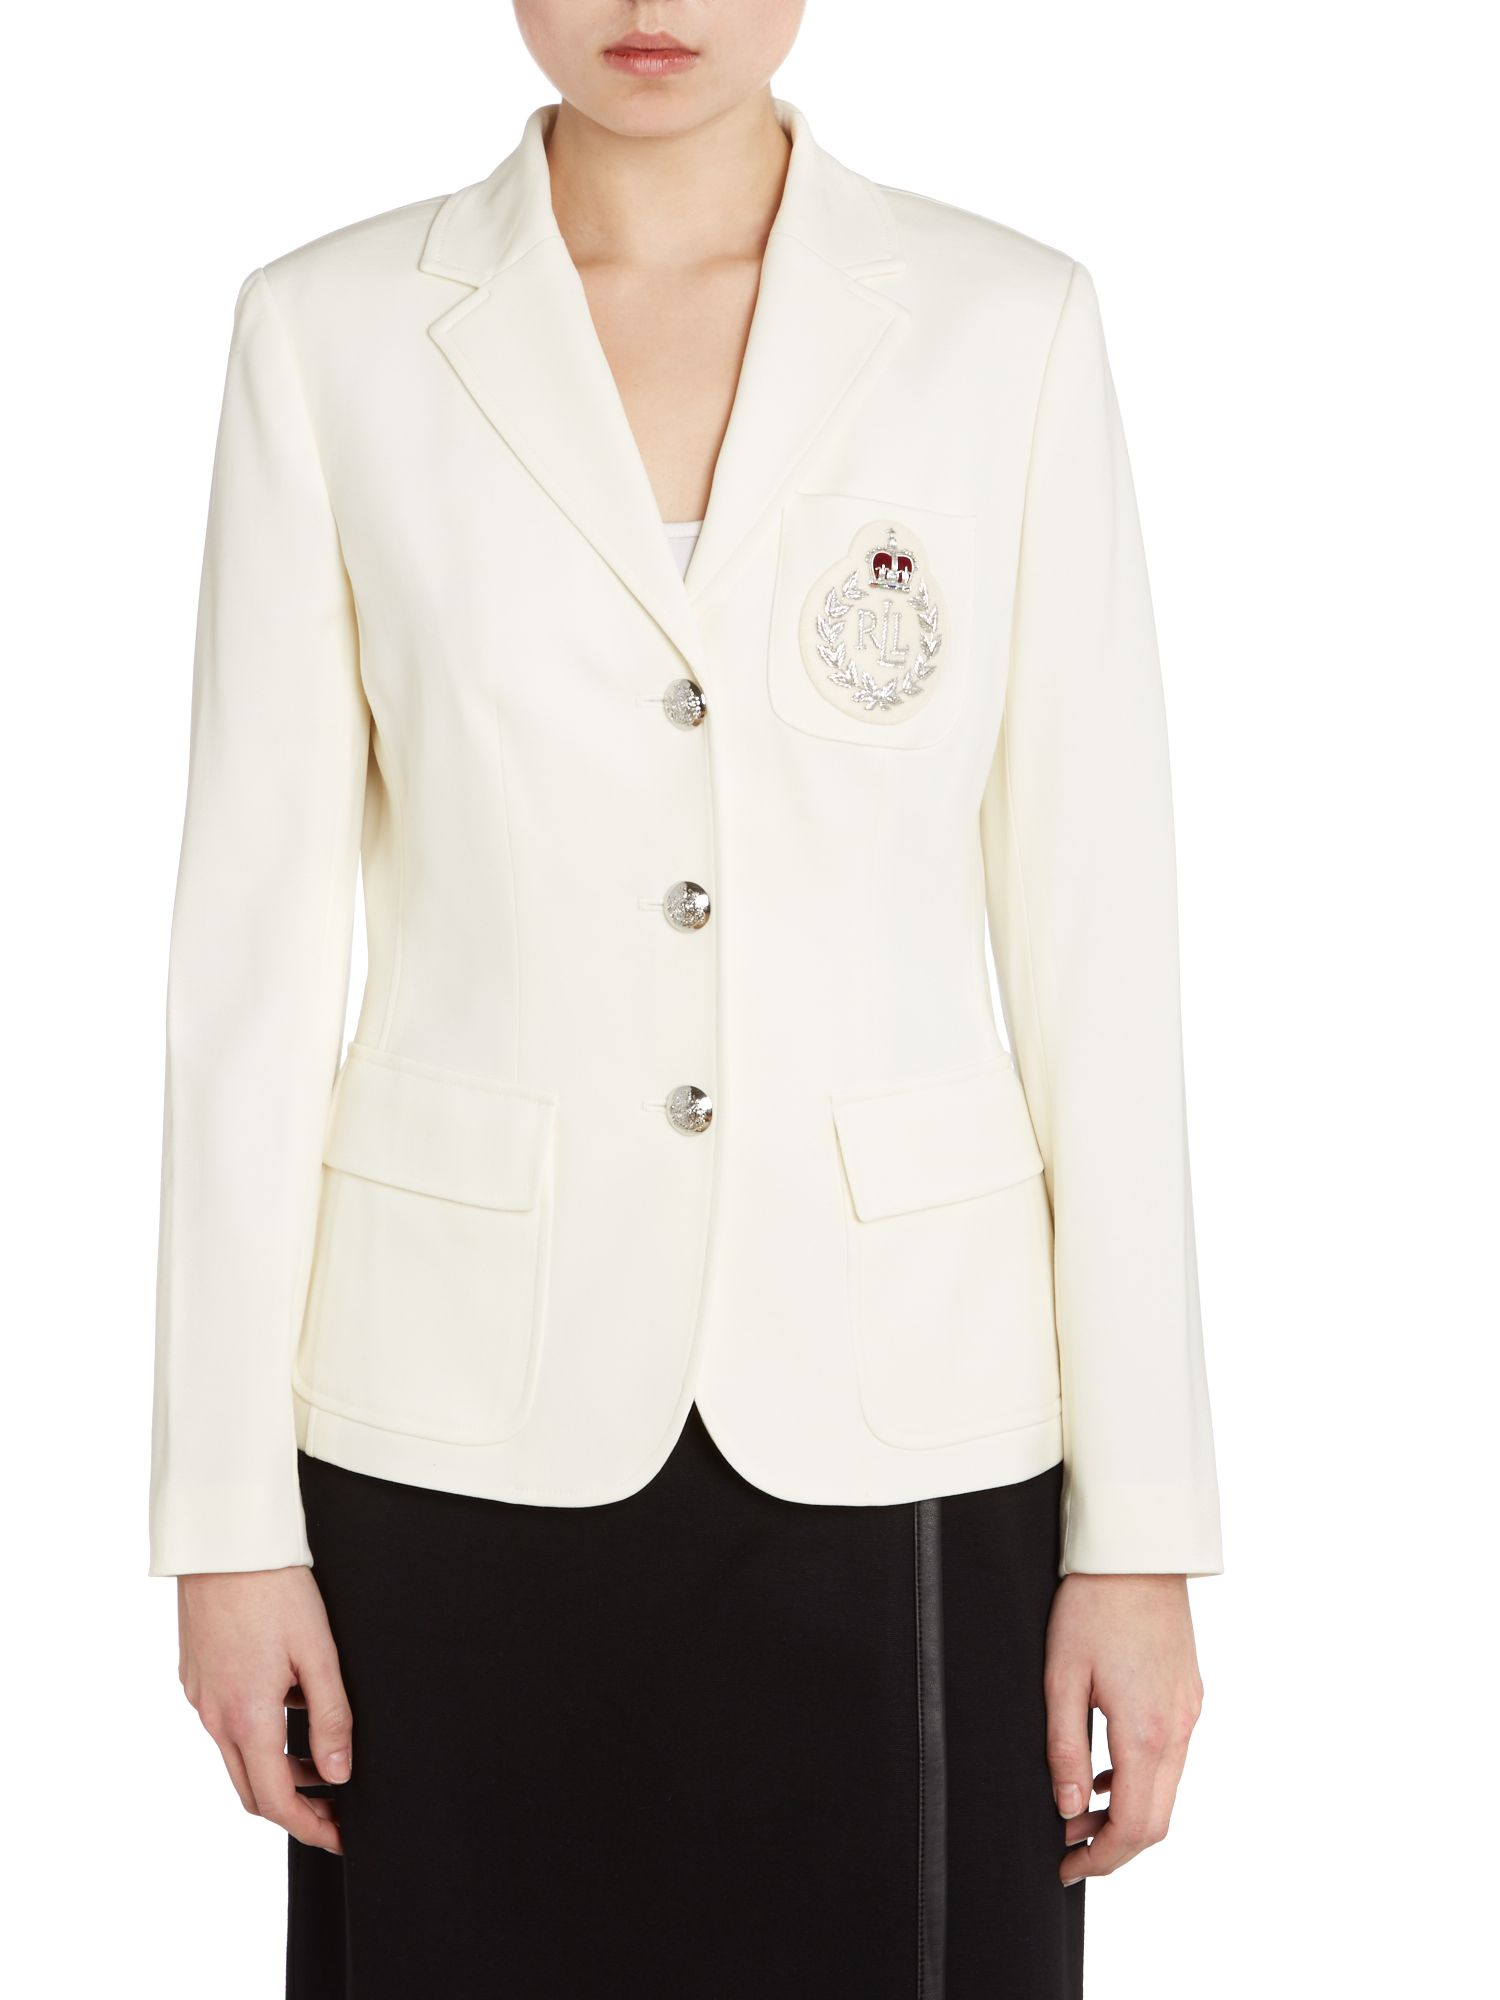 Long sleeved blazer with crest pocket detail